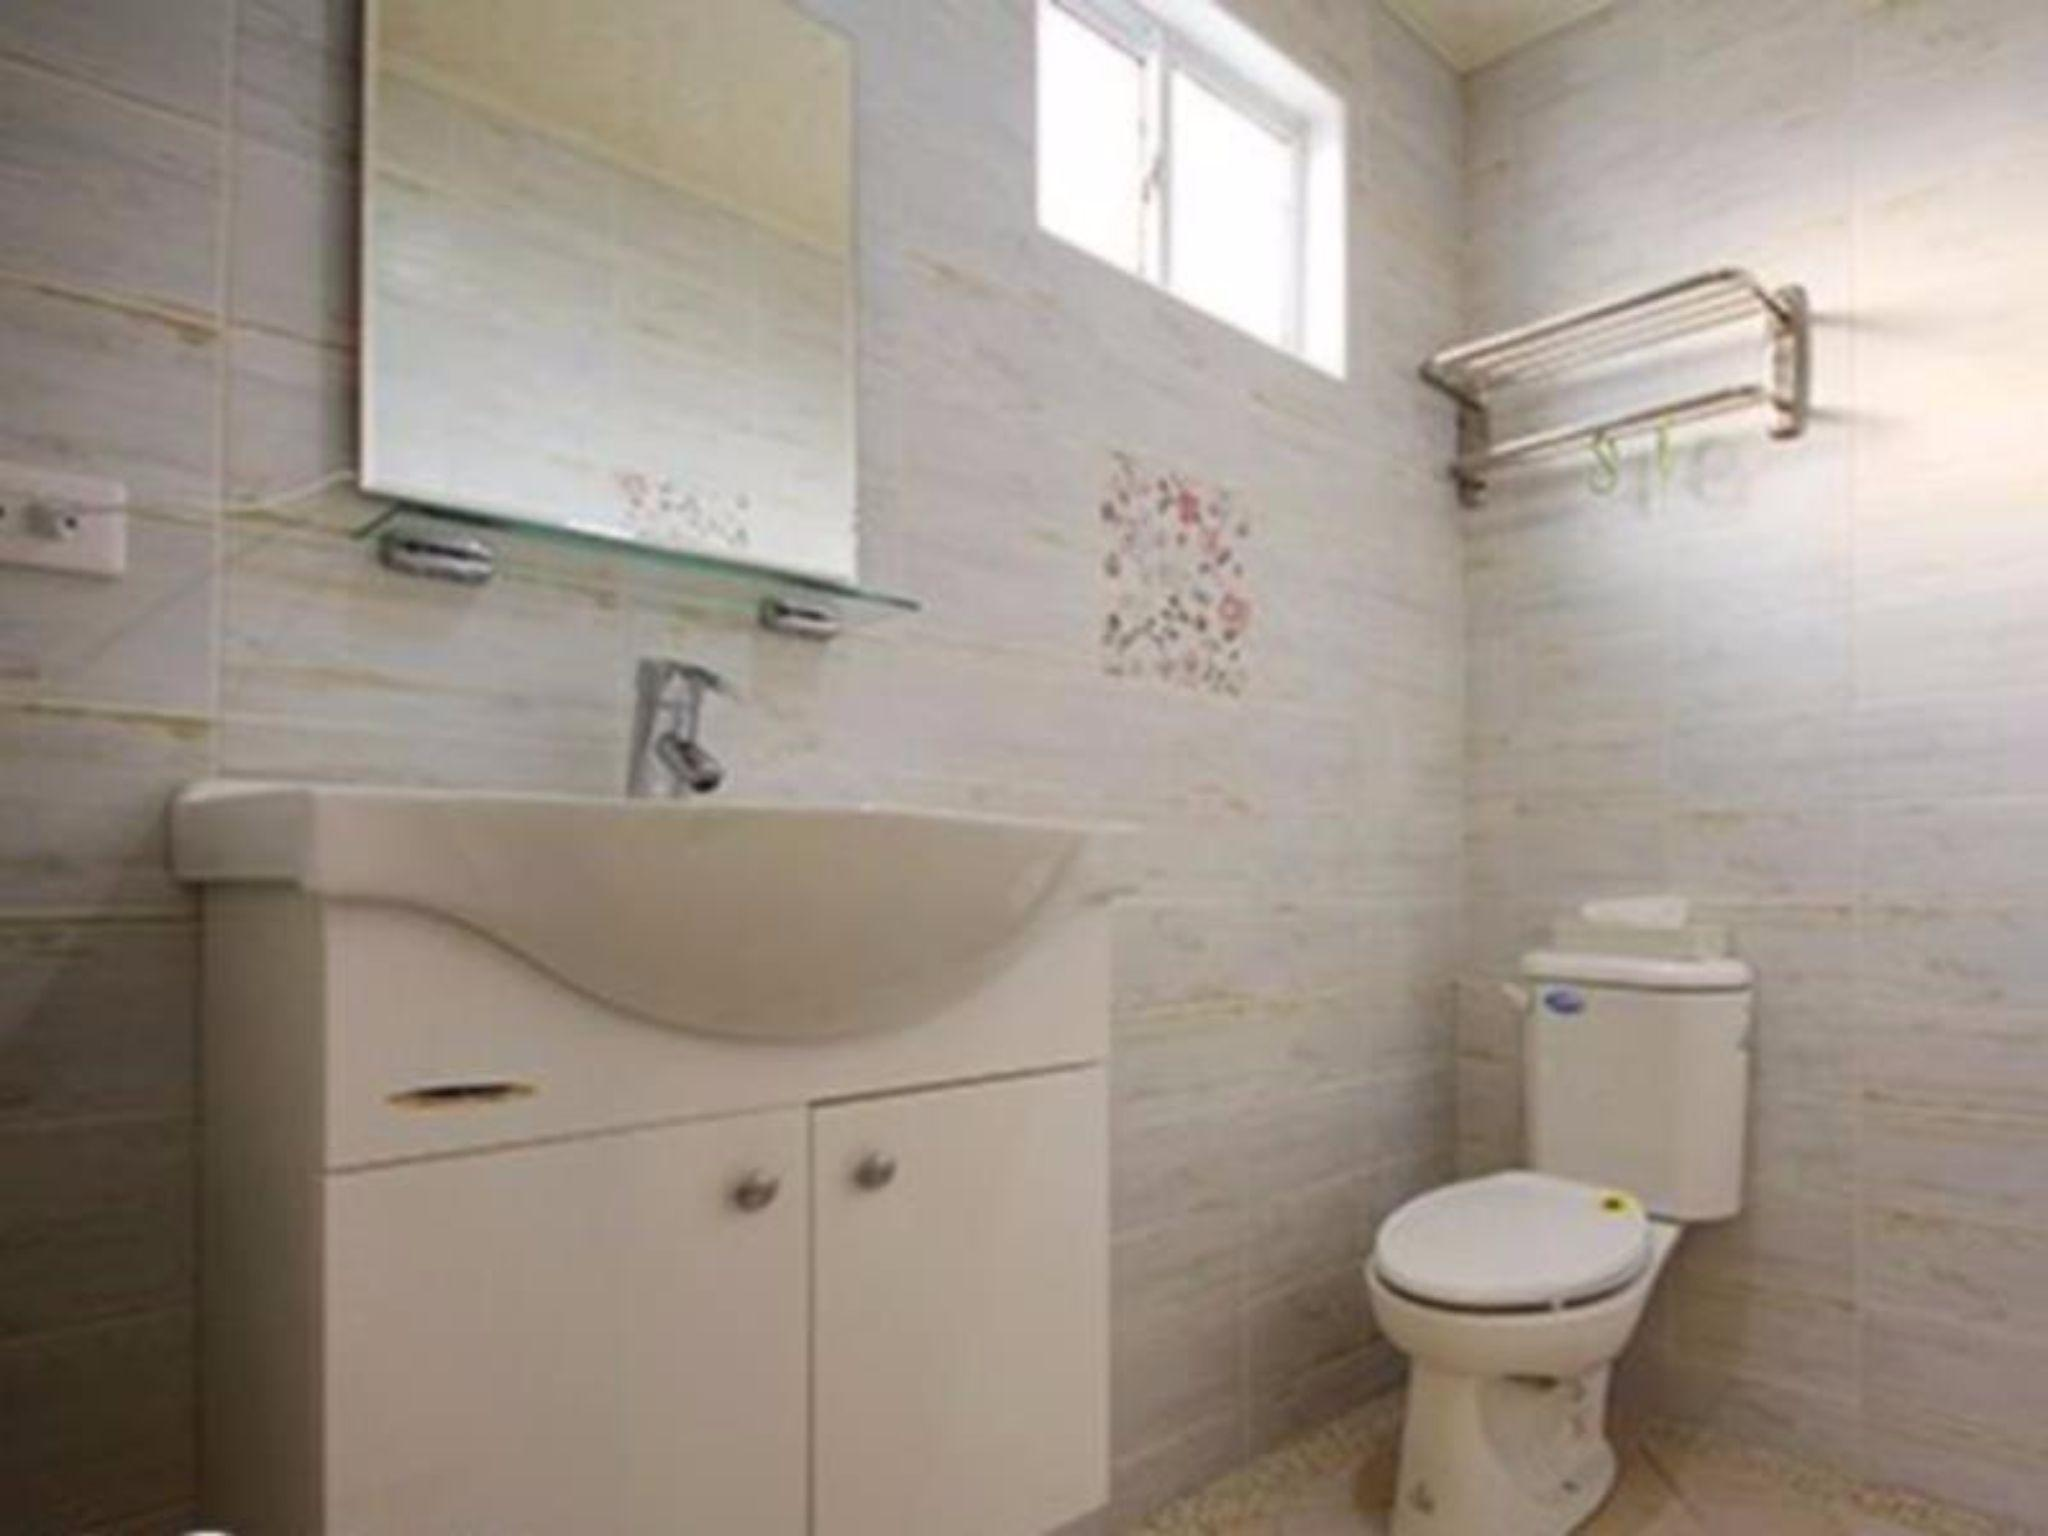 Quad shared bathroom